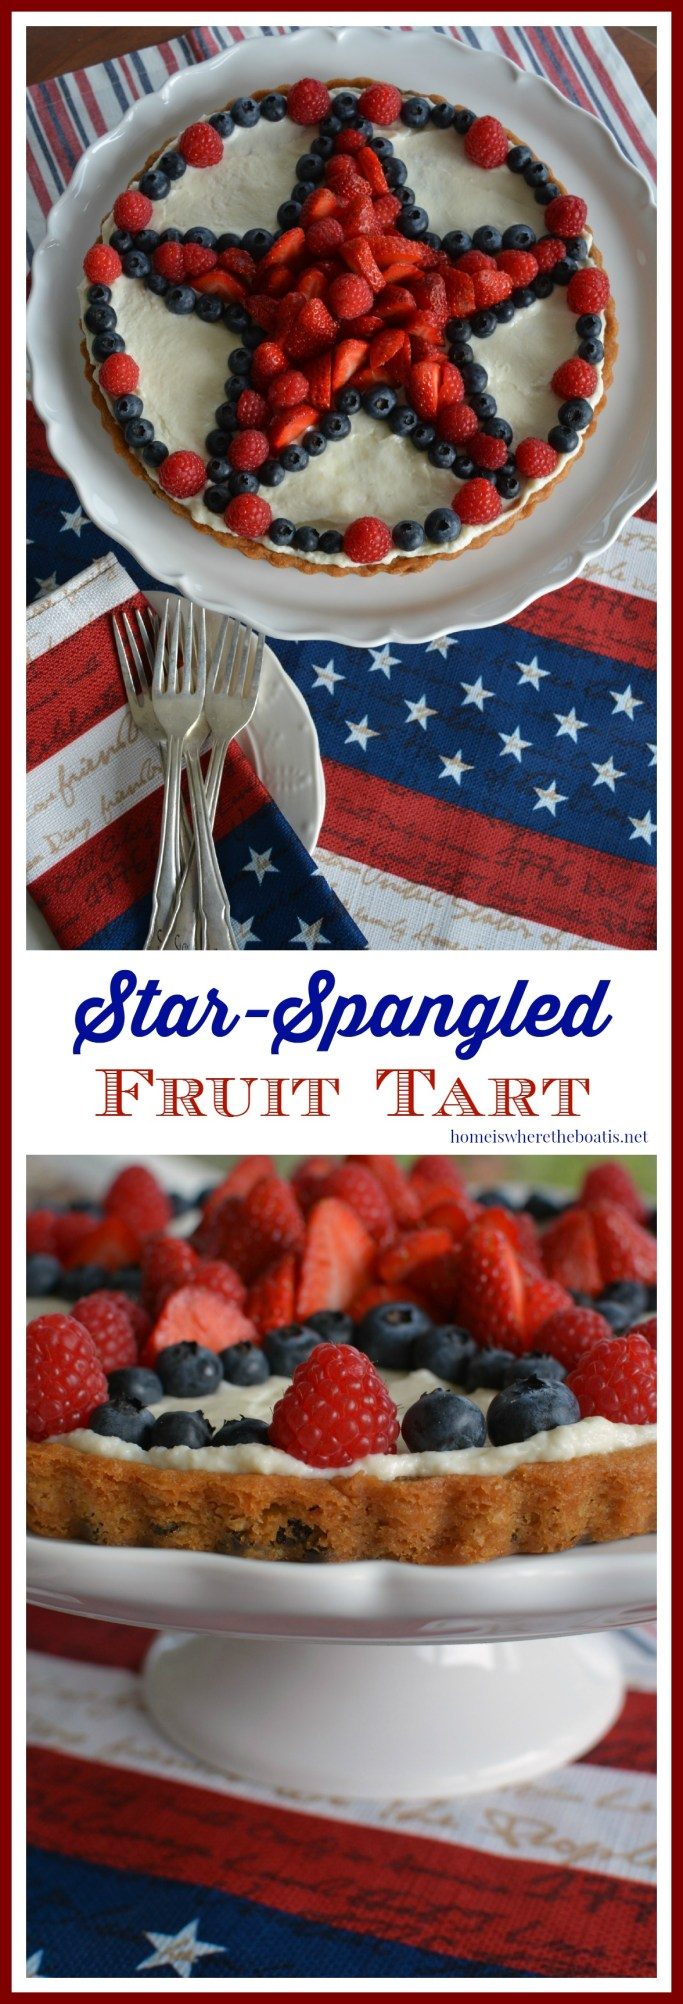 Star-Spangled Fruit Tart